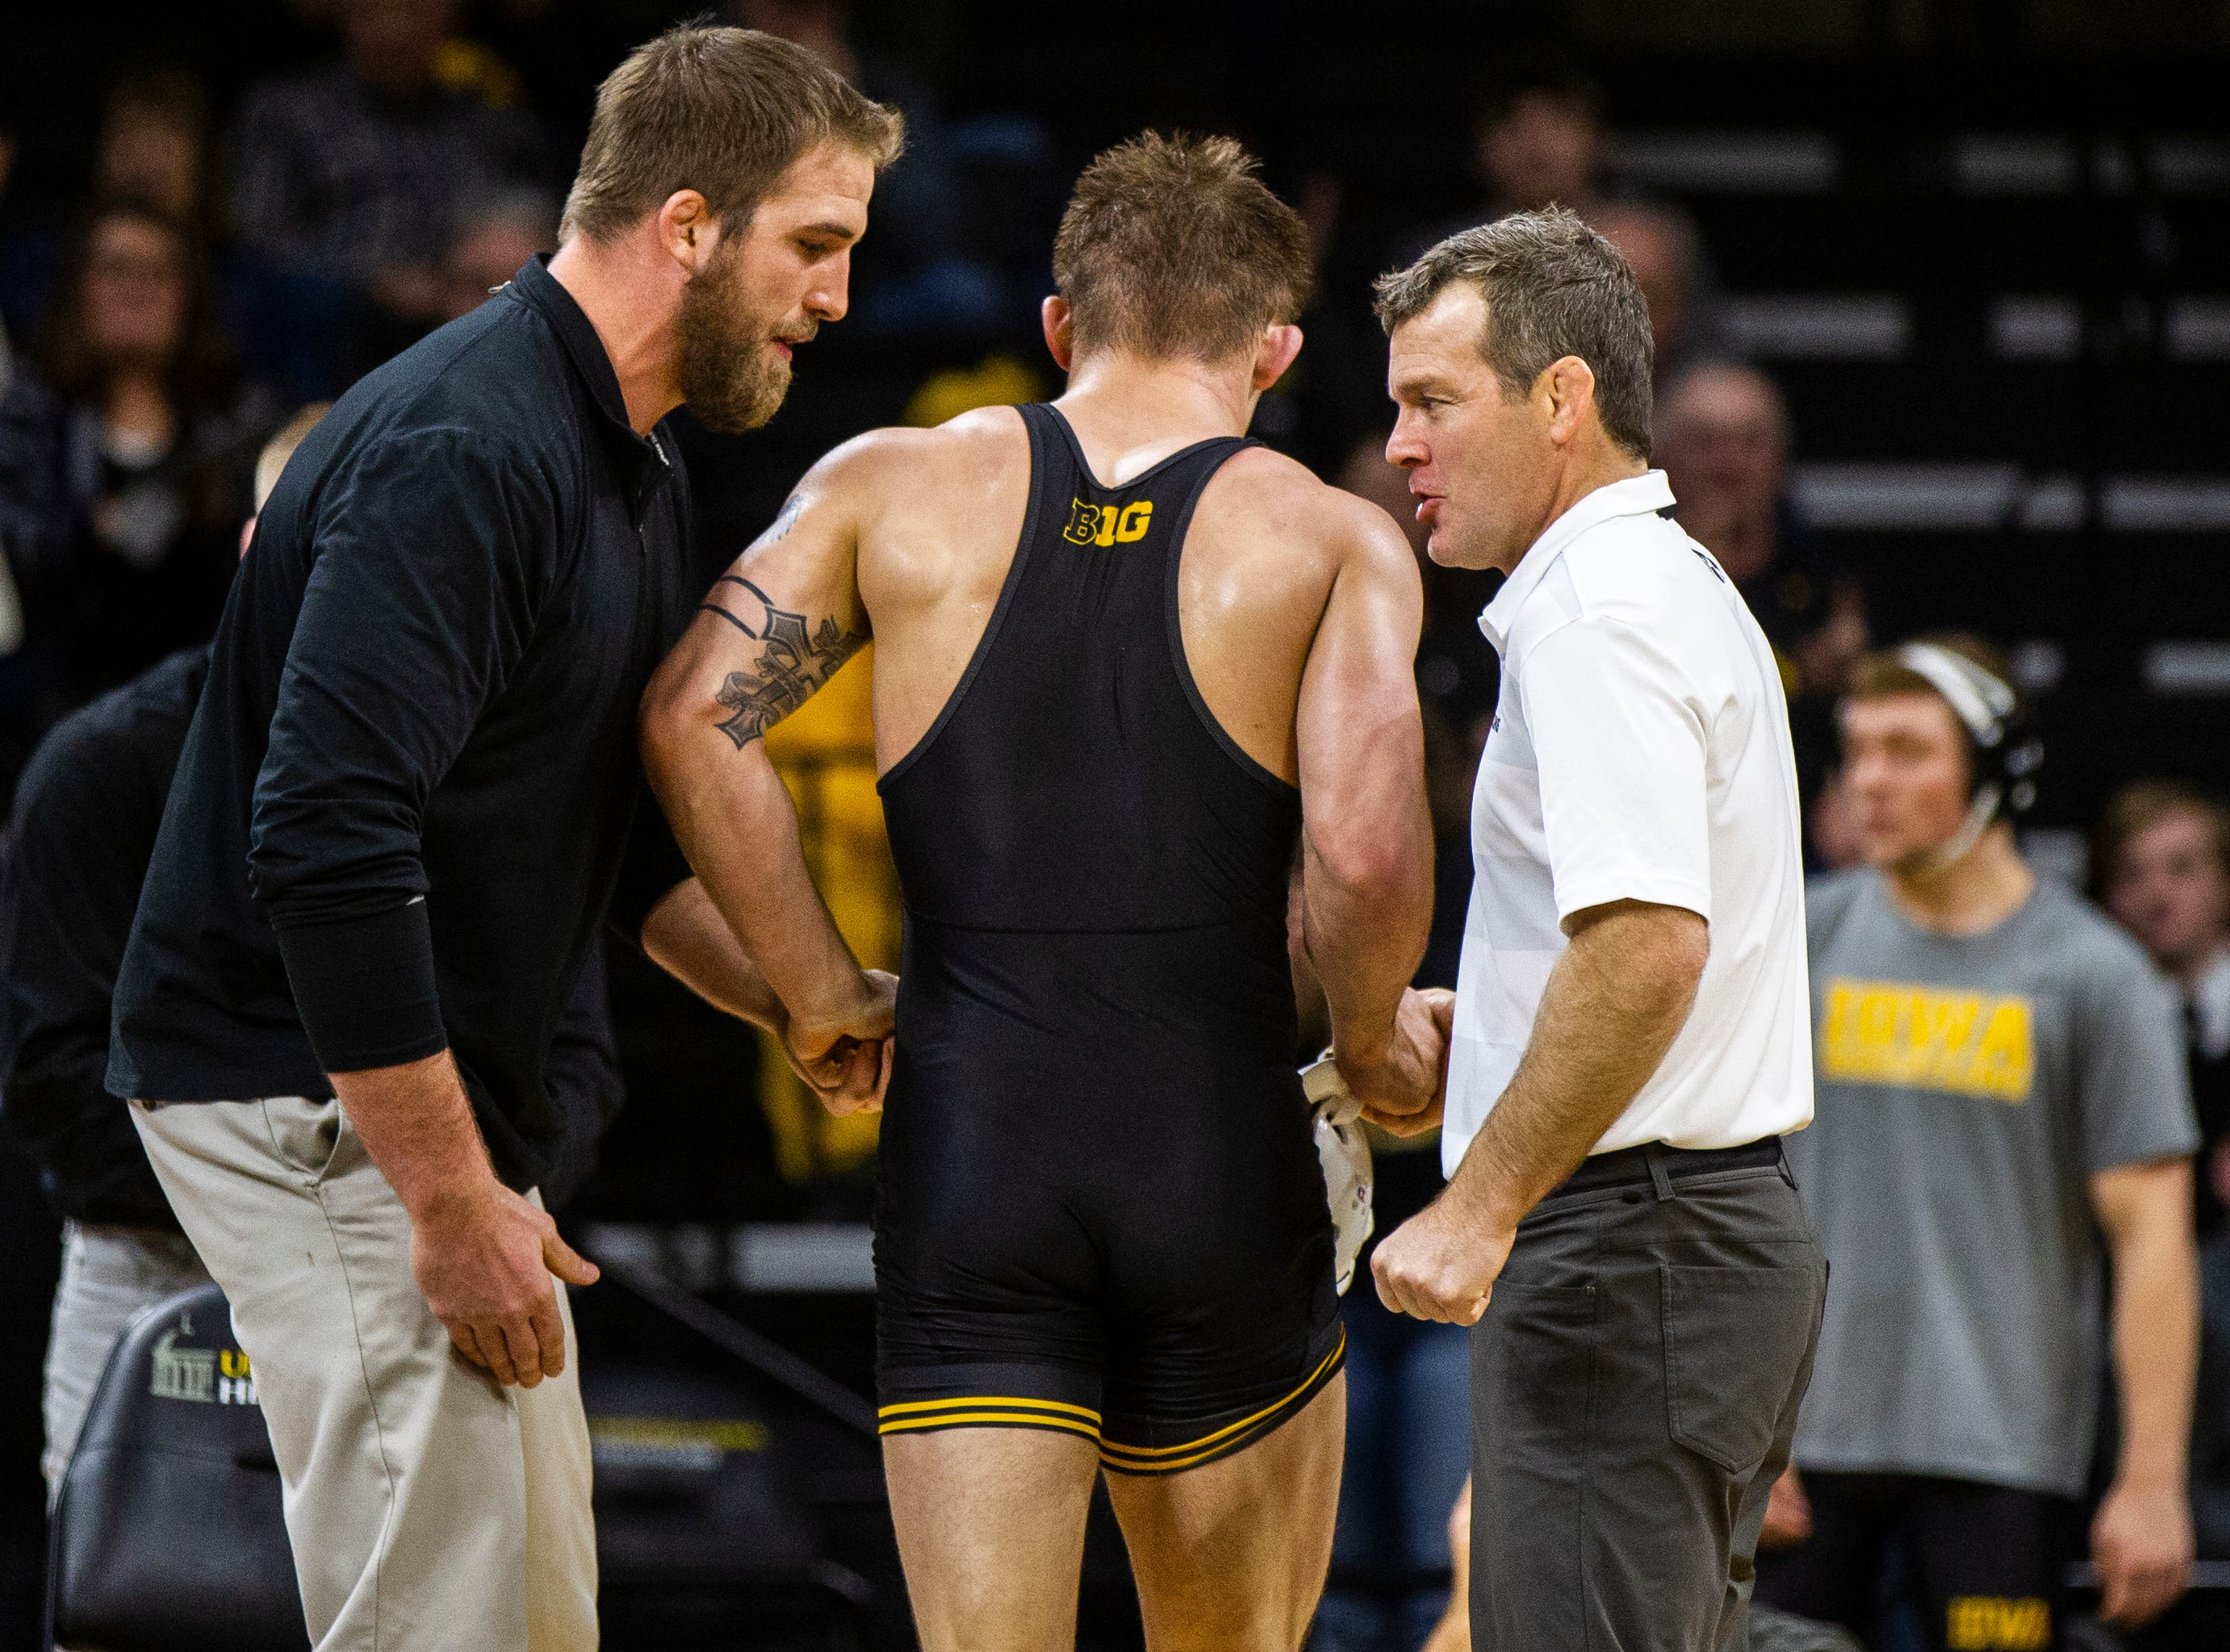 Iowa volunteer assistant coach Bobby Telford (left) and head coach Tom Brands congratulate Cash Wilcke after he scored a decision over Lehigh at 184 during a NCAA wrestling dual on Saturday, Dec. 8, 2018, at Carver-Hawkeye Arena in Iowa City.